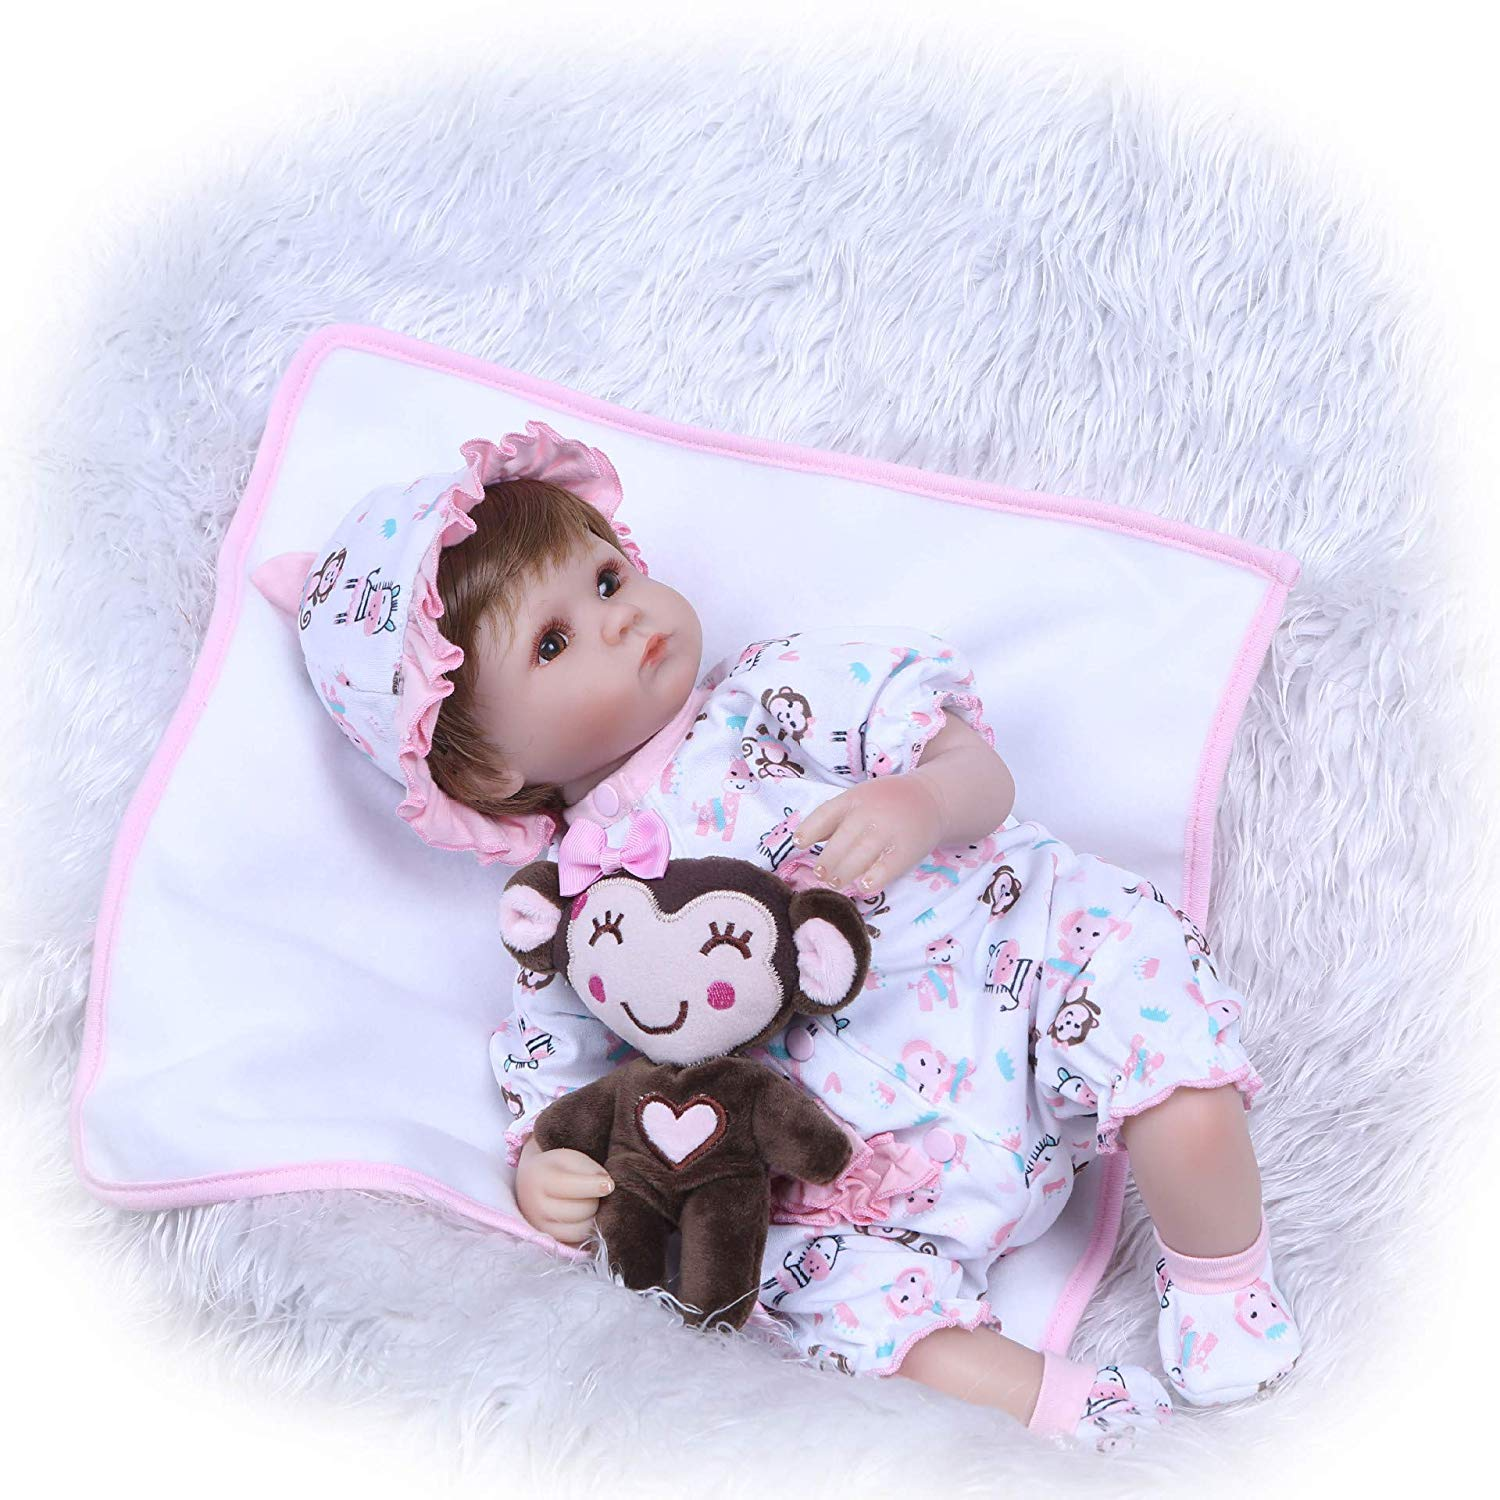 MGF 965 Reborn Baby Baby Girl, 40cm Realistic Silicone Baby Baby Girl Xmas Gift for Kids Age Alter 3 + 15788d